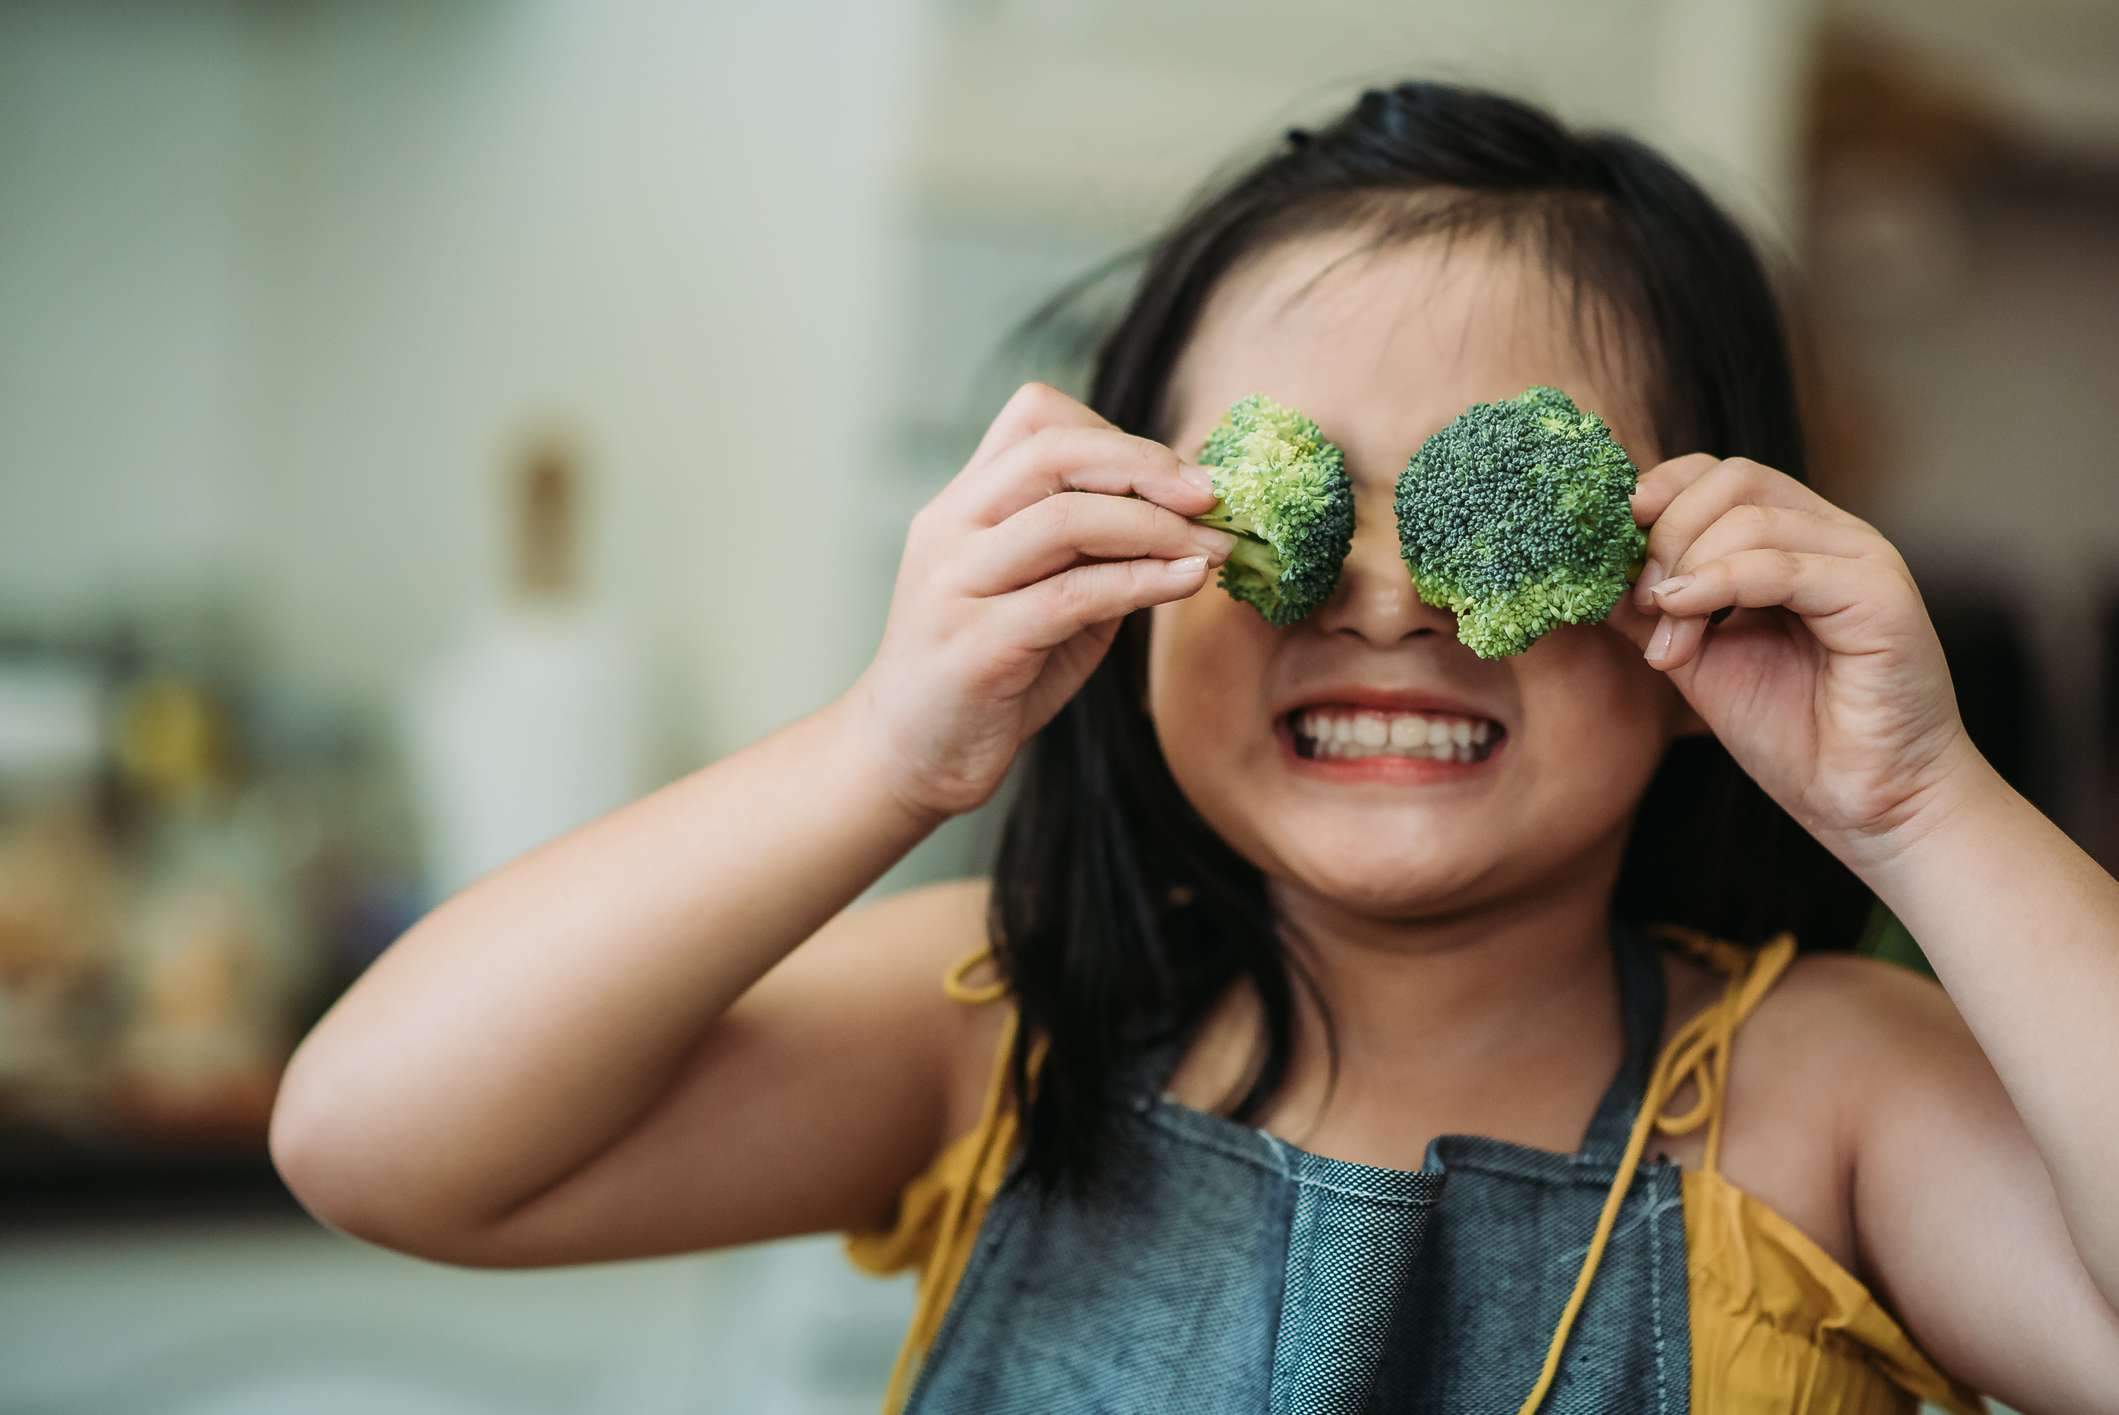 Asian chinese female child act cute with hand holding broccoli putting in front of her eyes with smiling face at kitchen